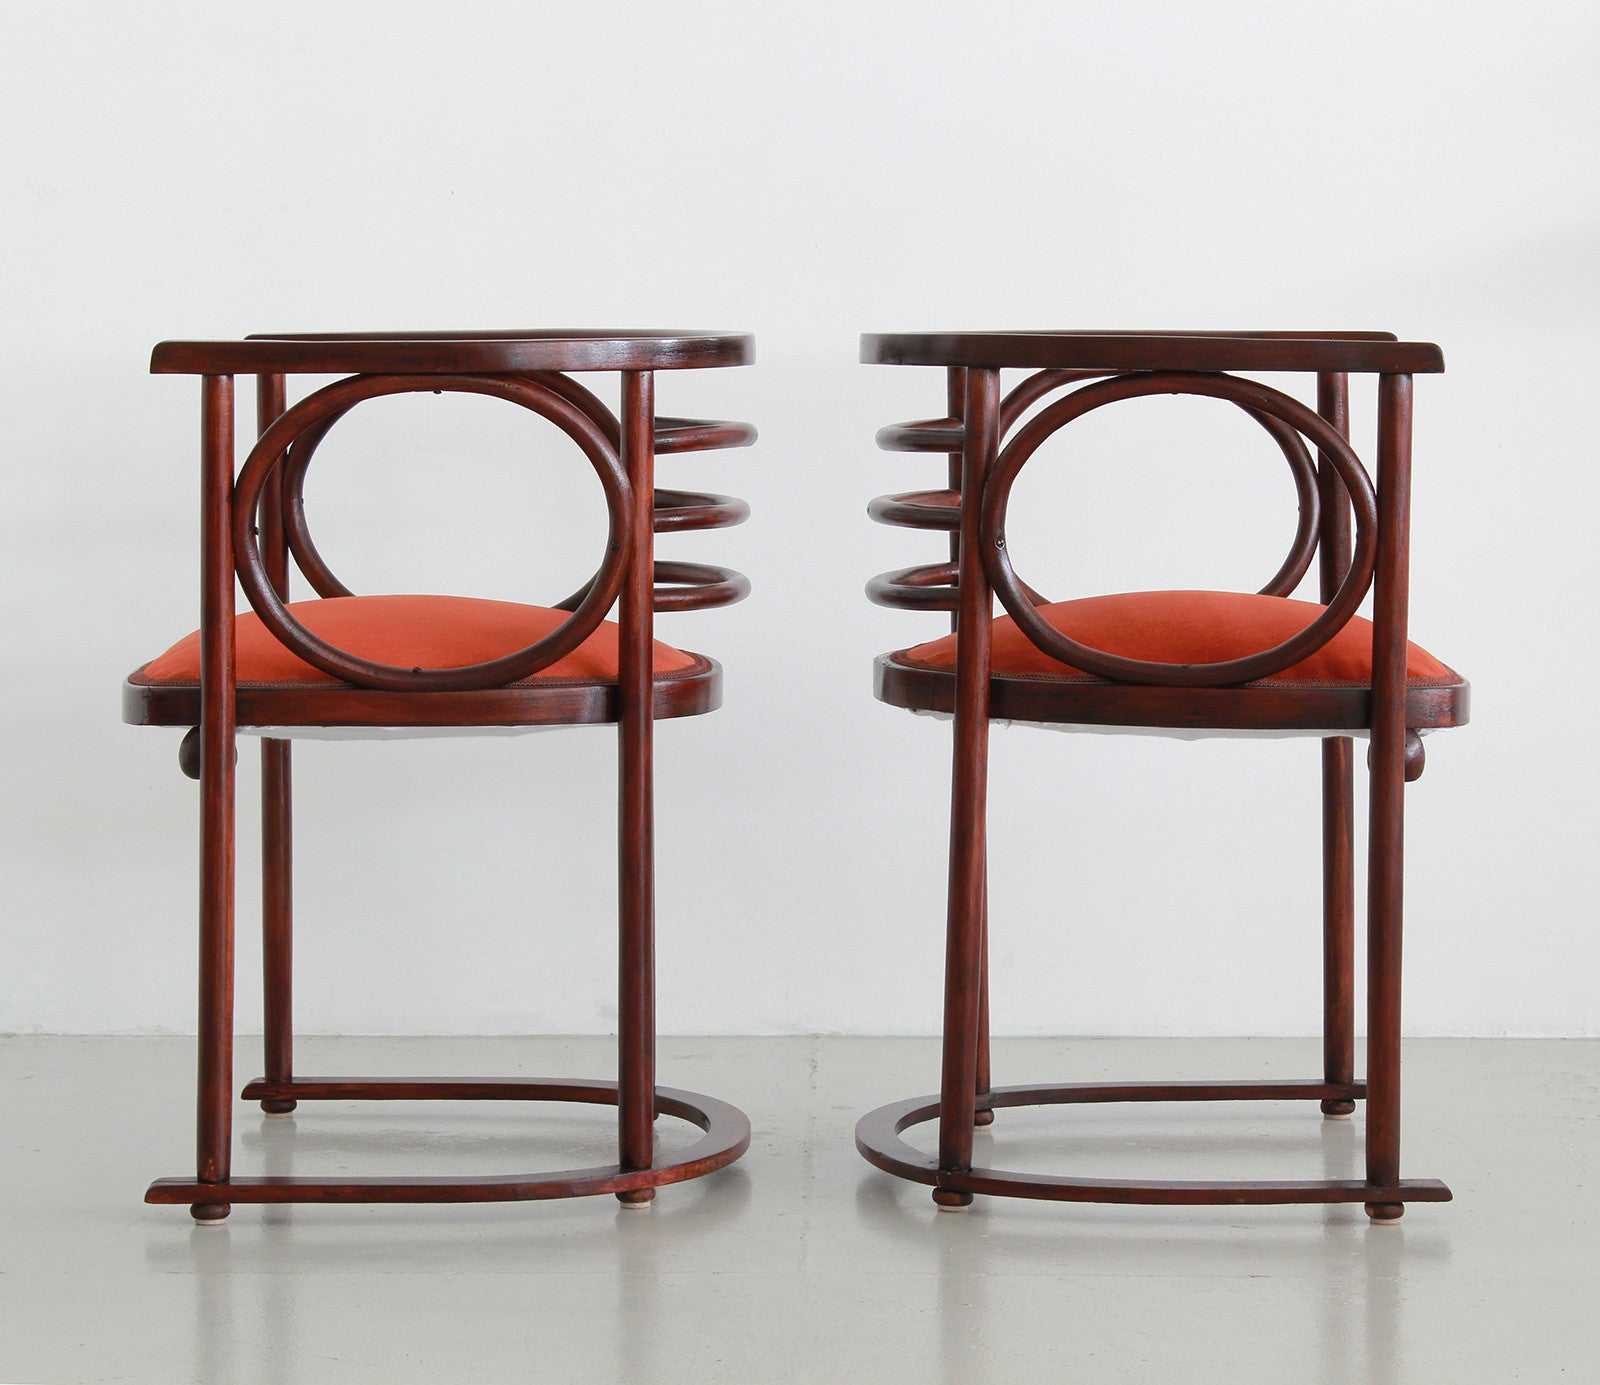 Exceptionnel ... Josef Hoffman Pair Of Fledermaus Chairs ...